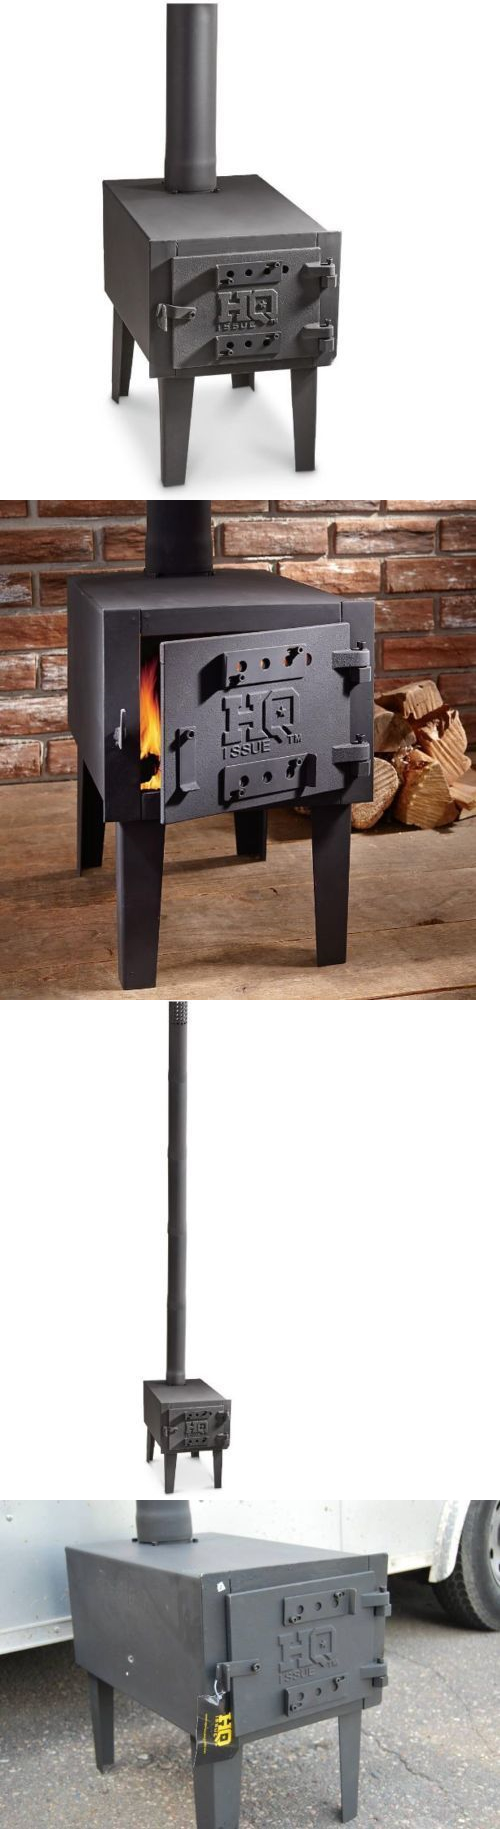 camping stoves 181386 outdoor wood stove camping hiking hunting